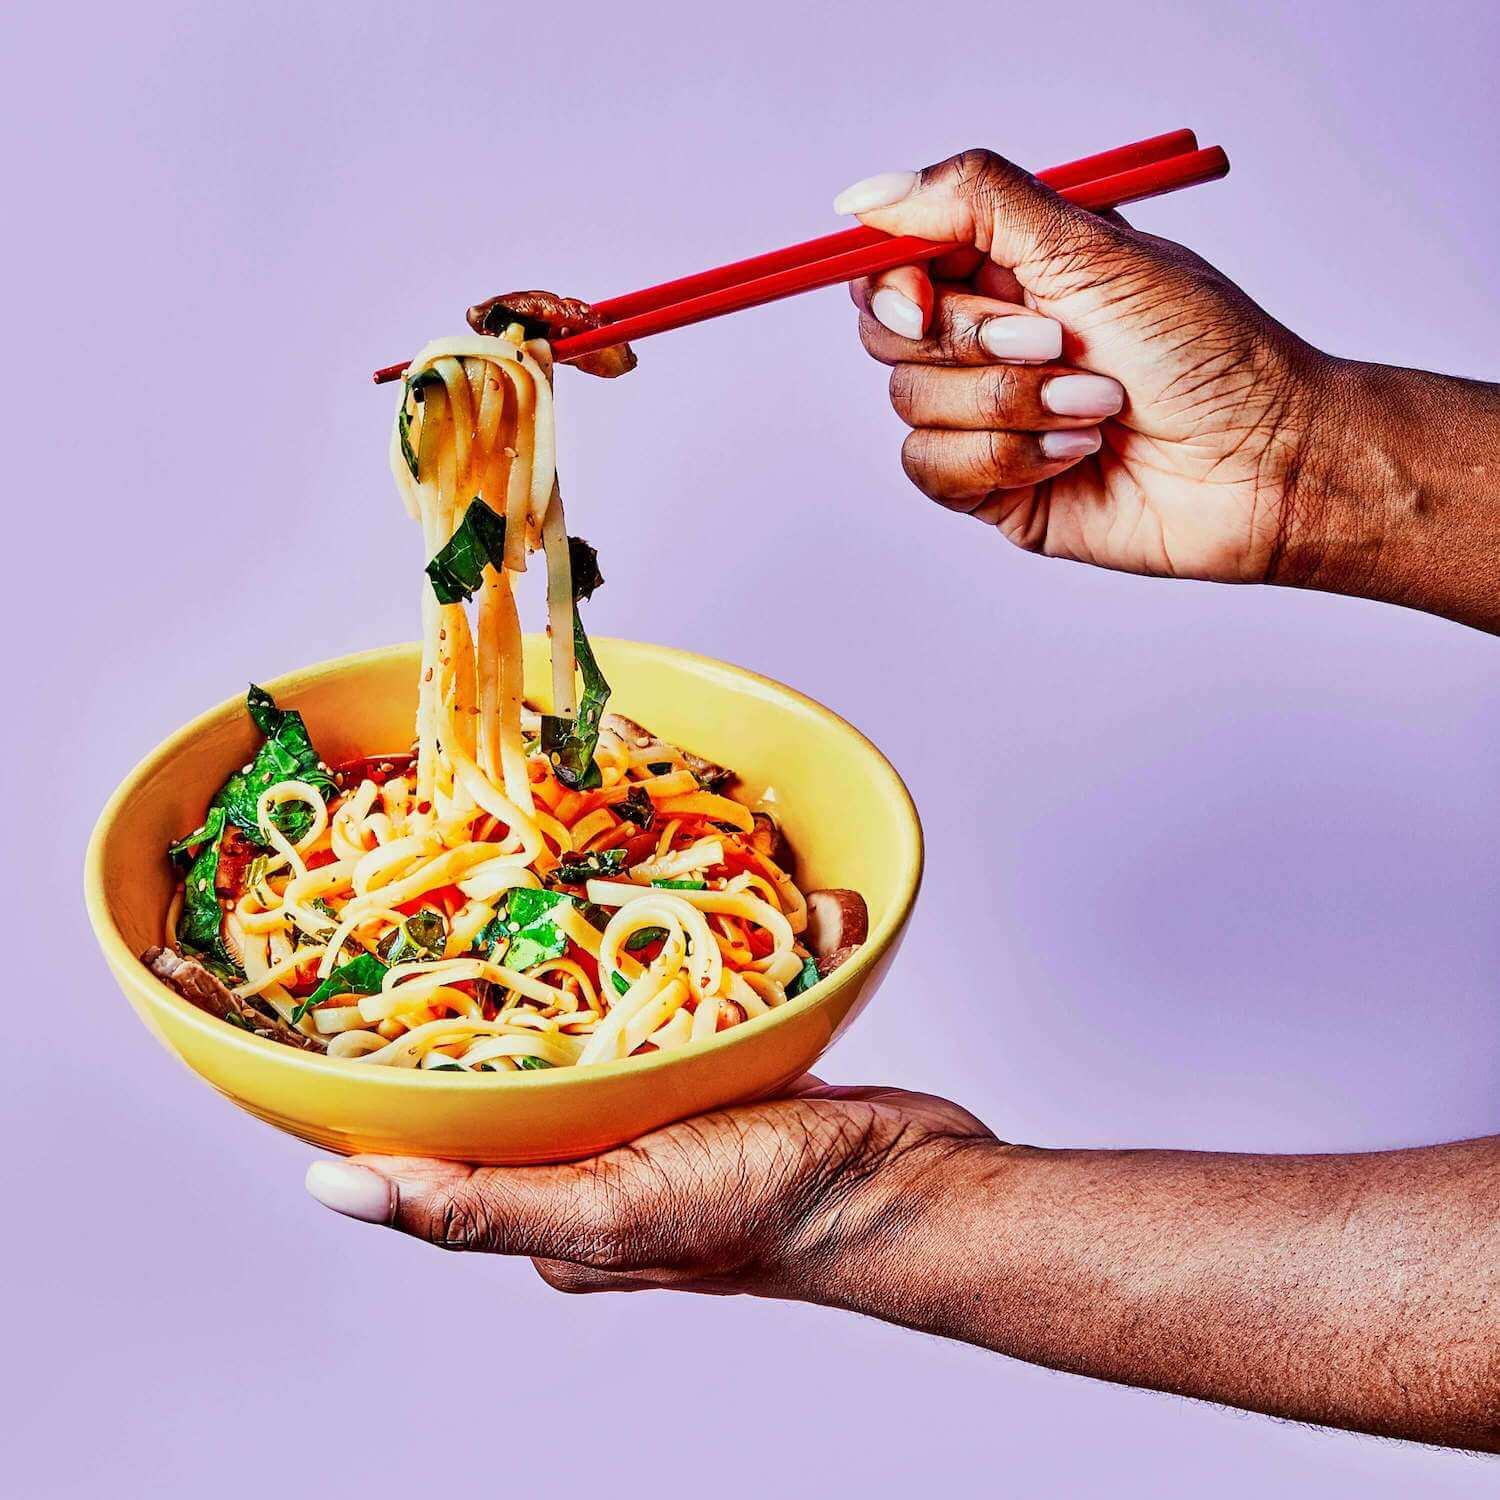 Sesame Noodles in a dish being held by a woman, who is pulling the noodles up out of the bowl with chopsticks.